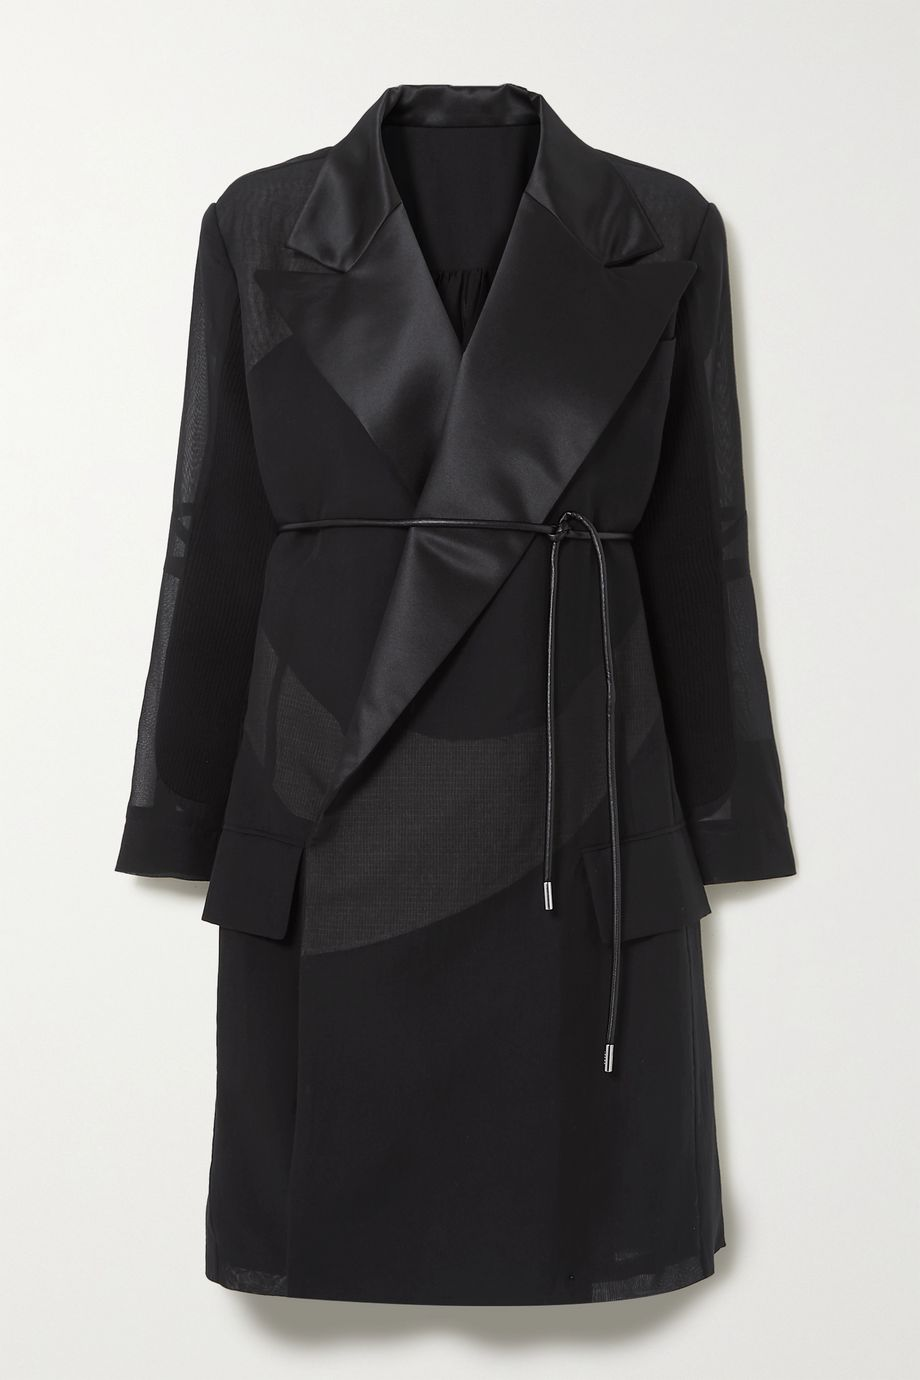 Sacai Belted satin-trimmed cotton-blend poplin and pleated chiffon coat